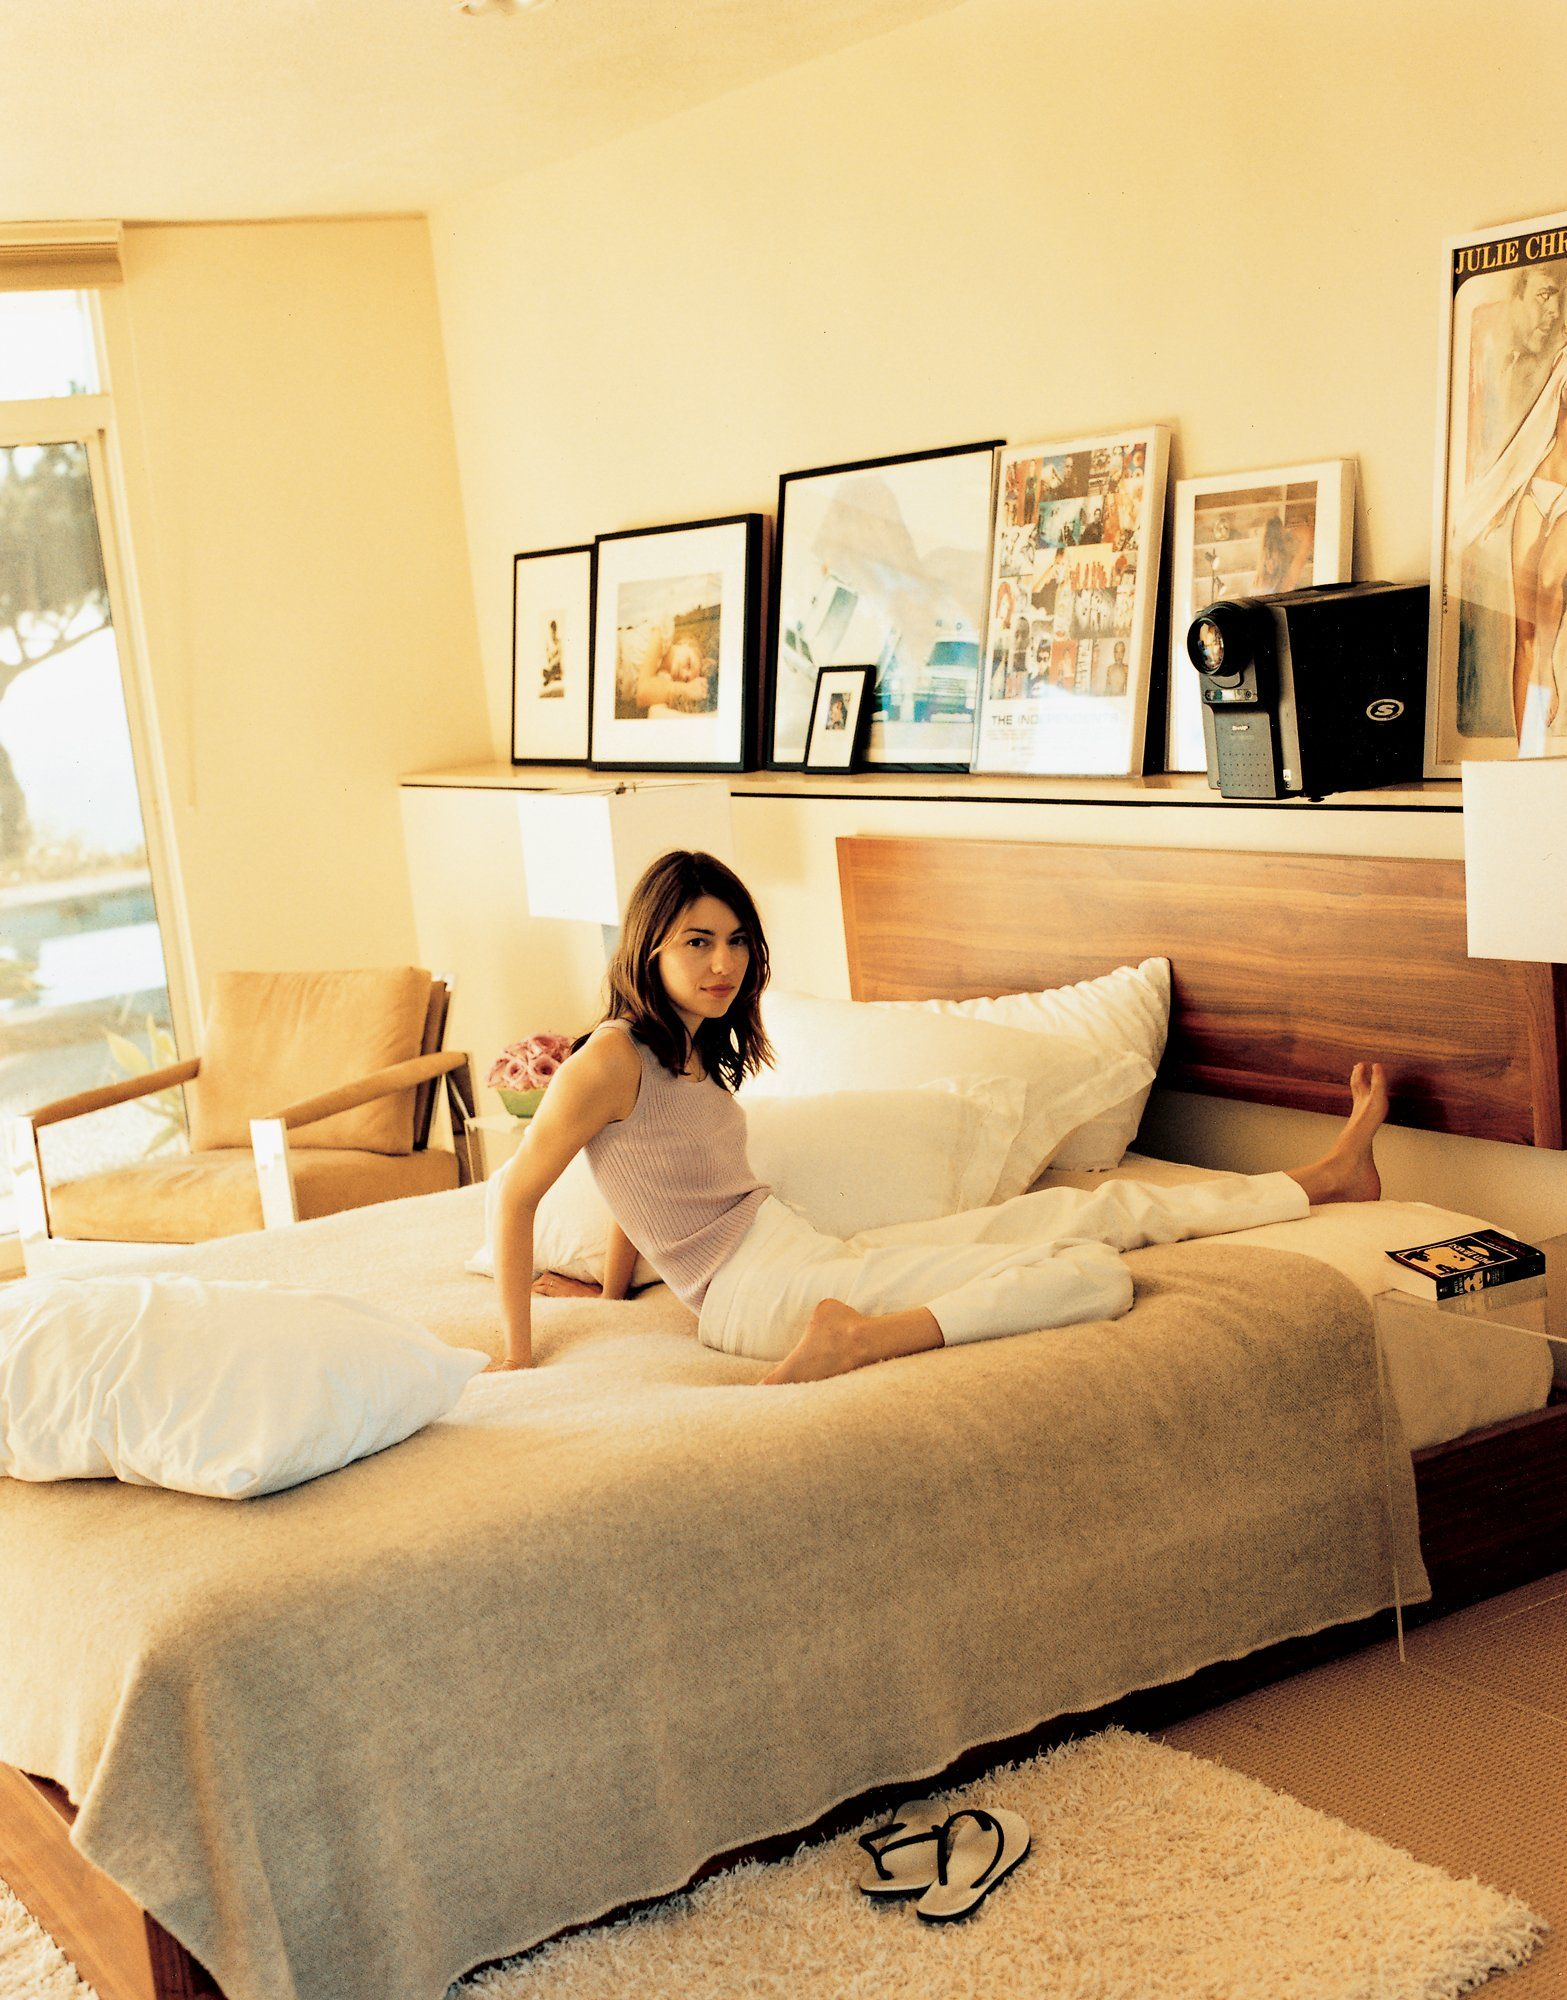 Sofia Coppola In Her Mid Century Modern Bedroom Complete With Rug And Vintage Fashion Photography